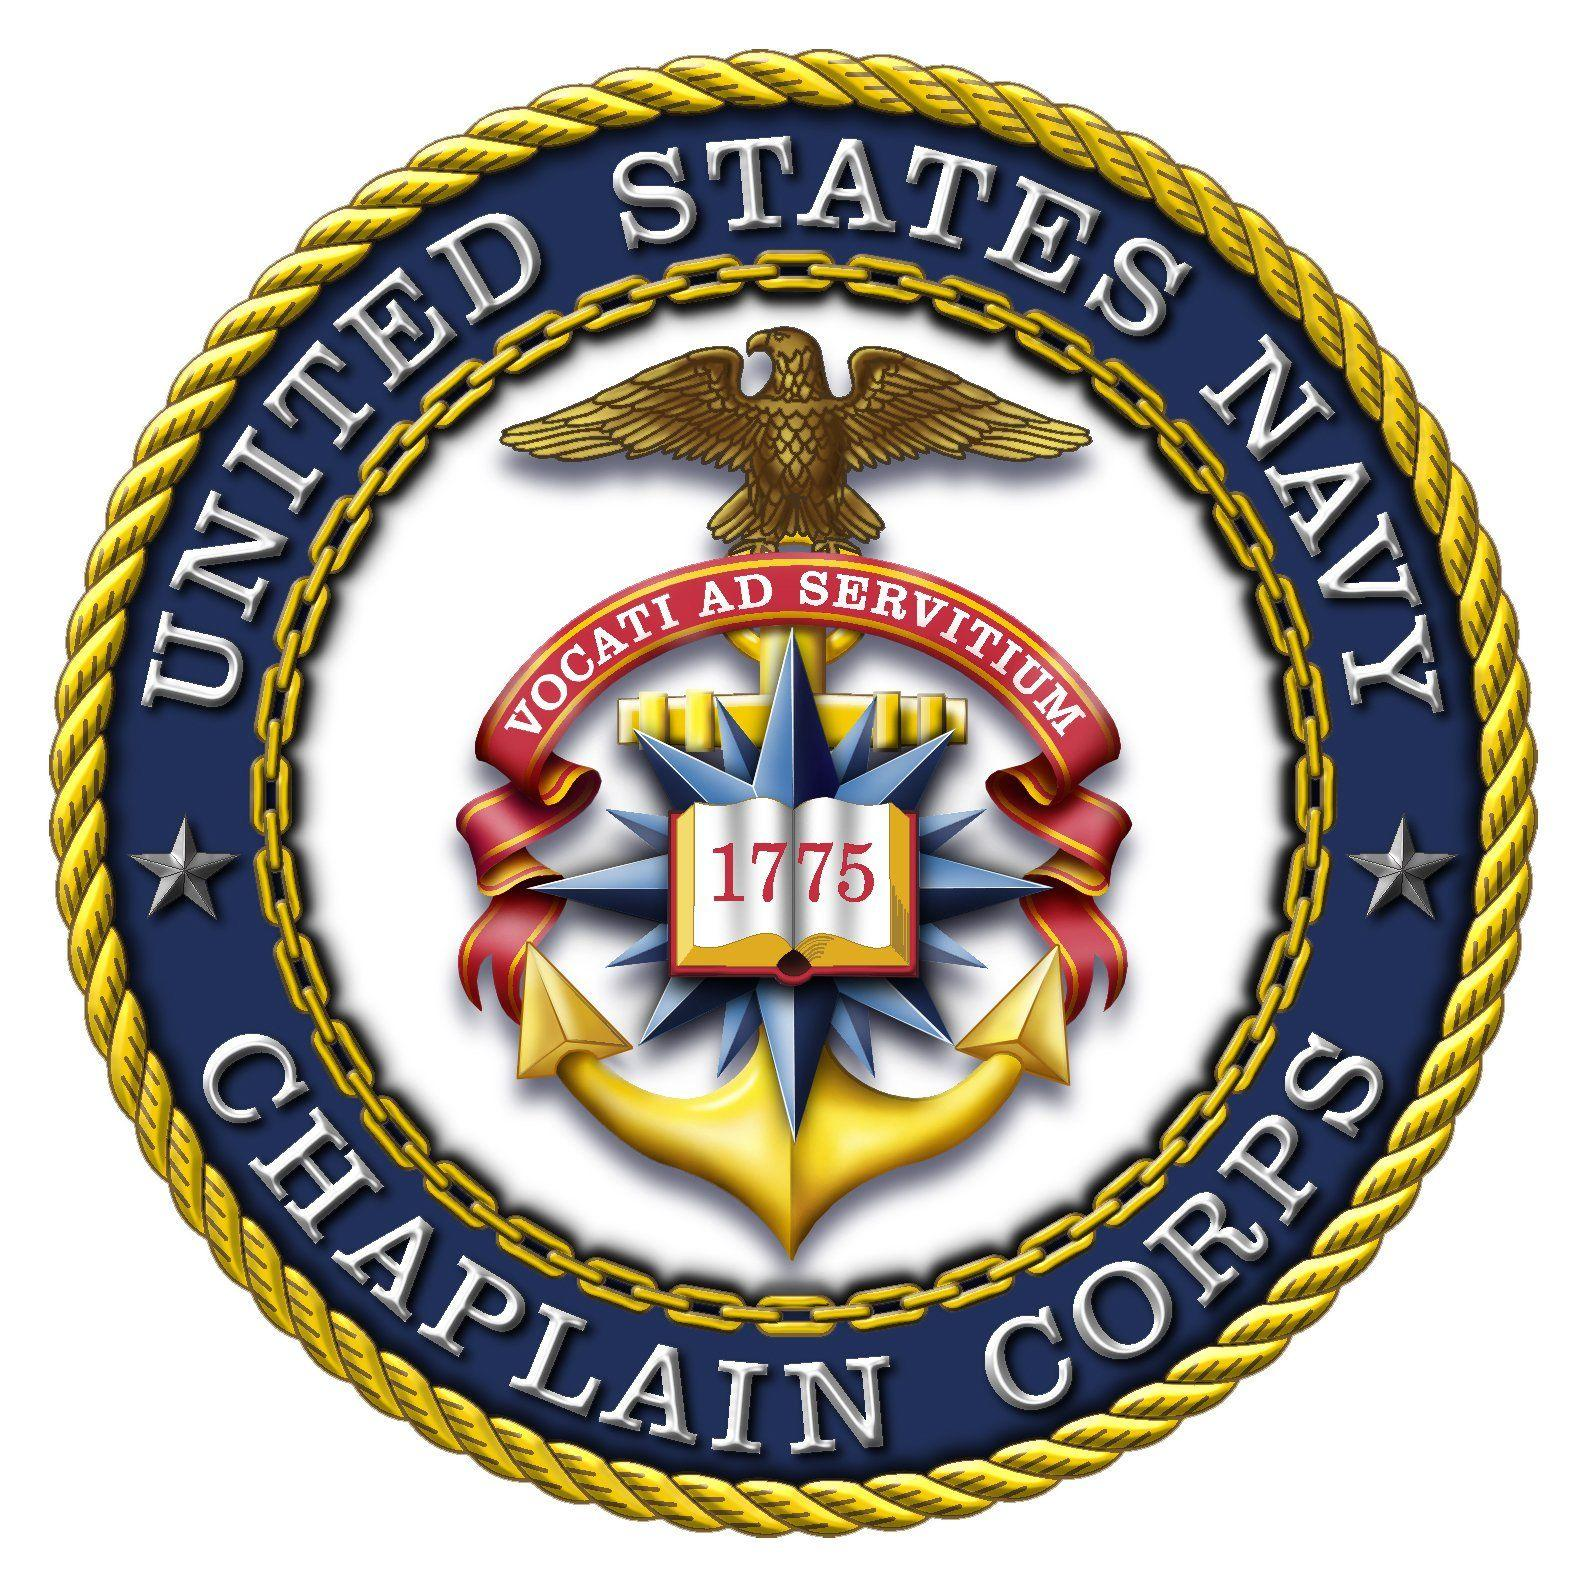 Us navy logo wallpaper real clipart and vector graphics navy logo wallpapers wallpaper cave rh wallpapercave com altavistaventures Image collections